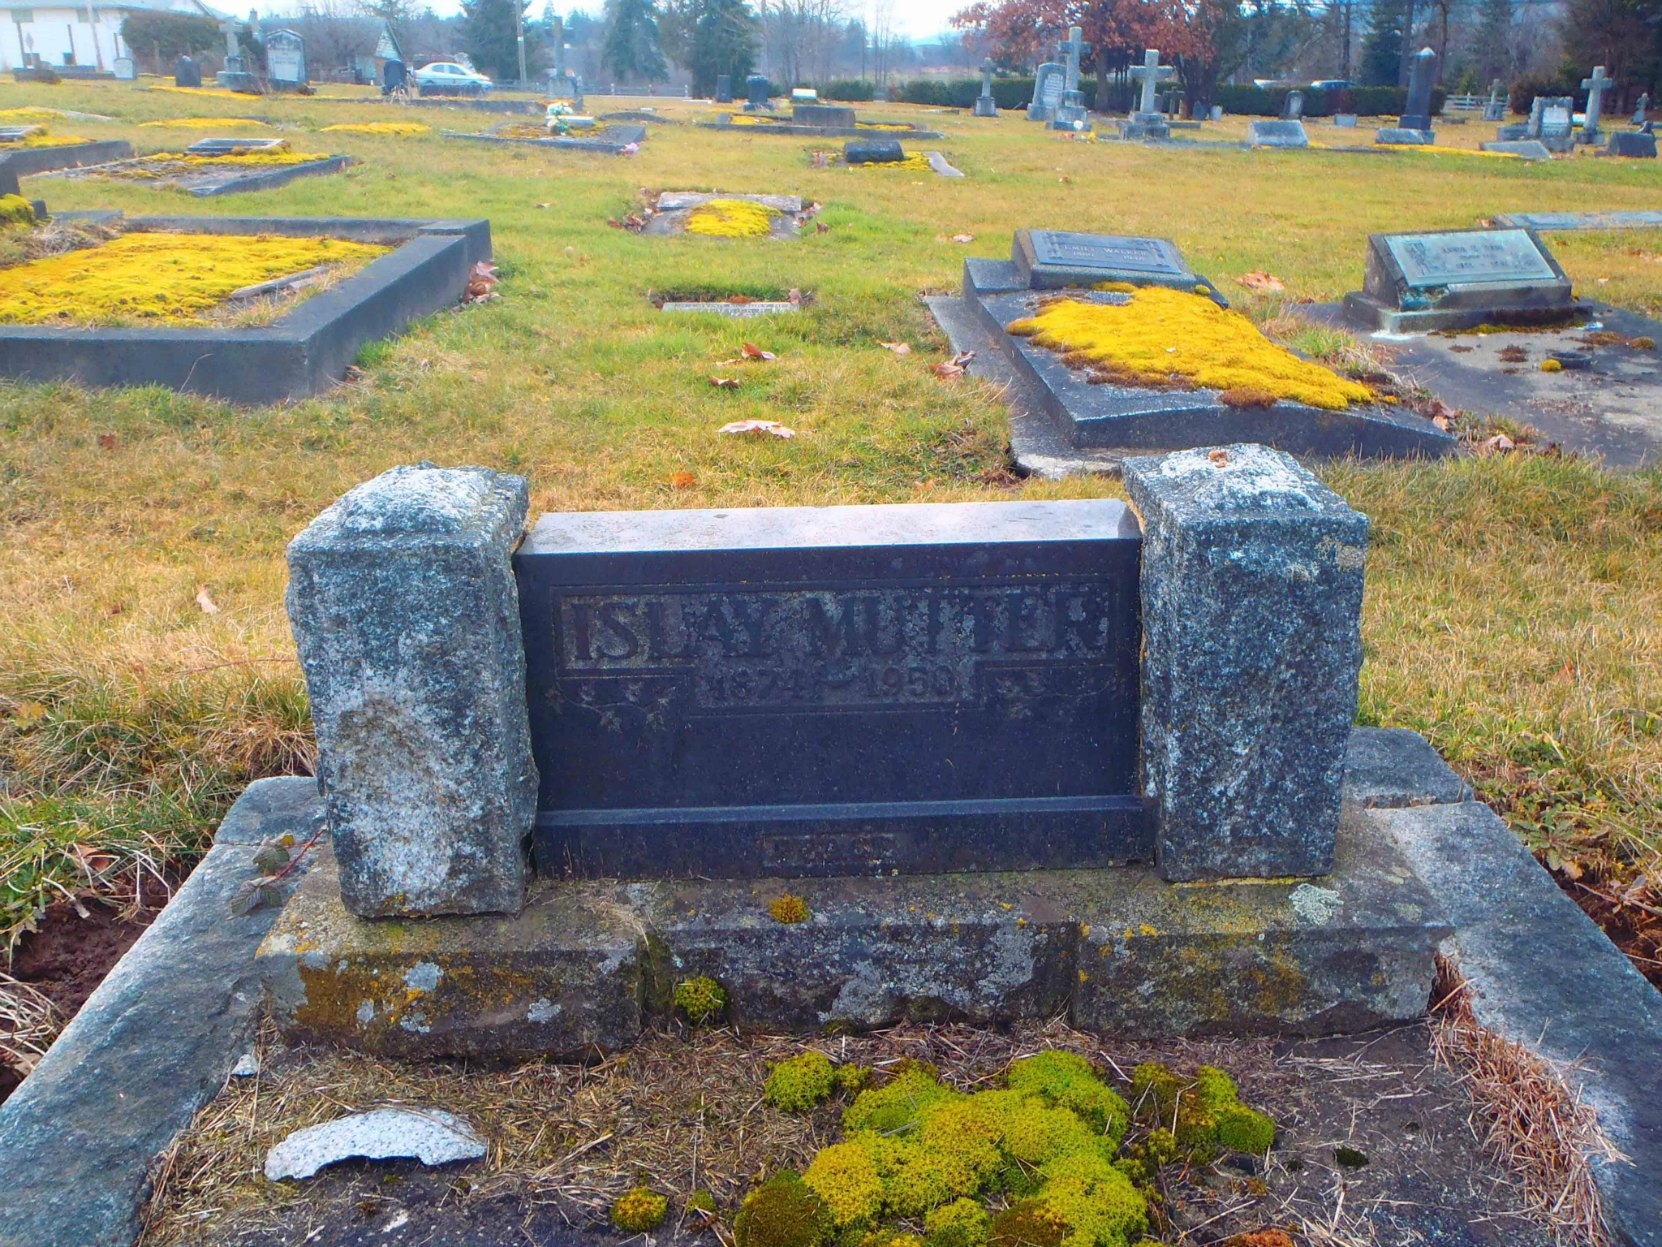 J. Islay Mutter grave marker, St. Mary's Somenos Anglican cemetery, North Cowichan